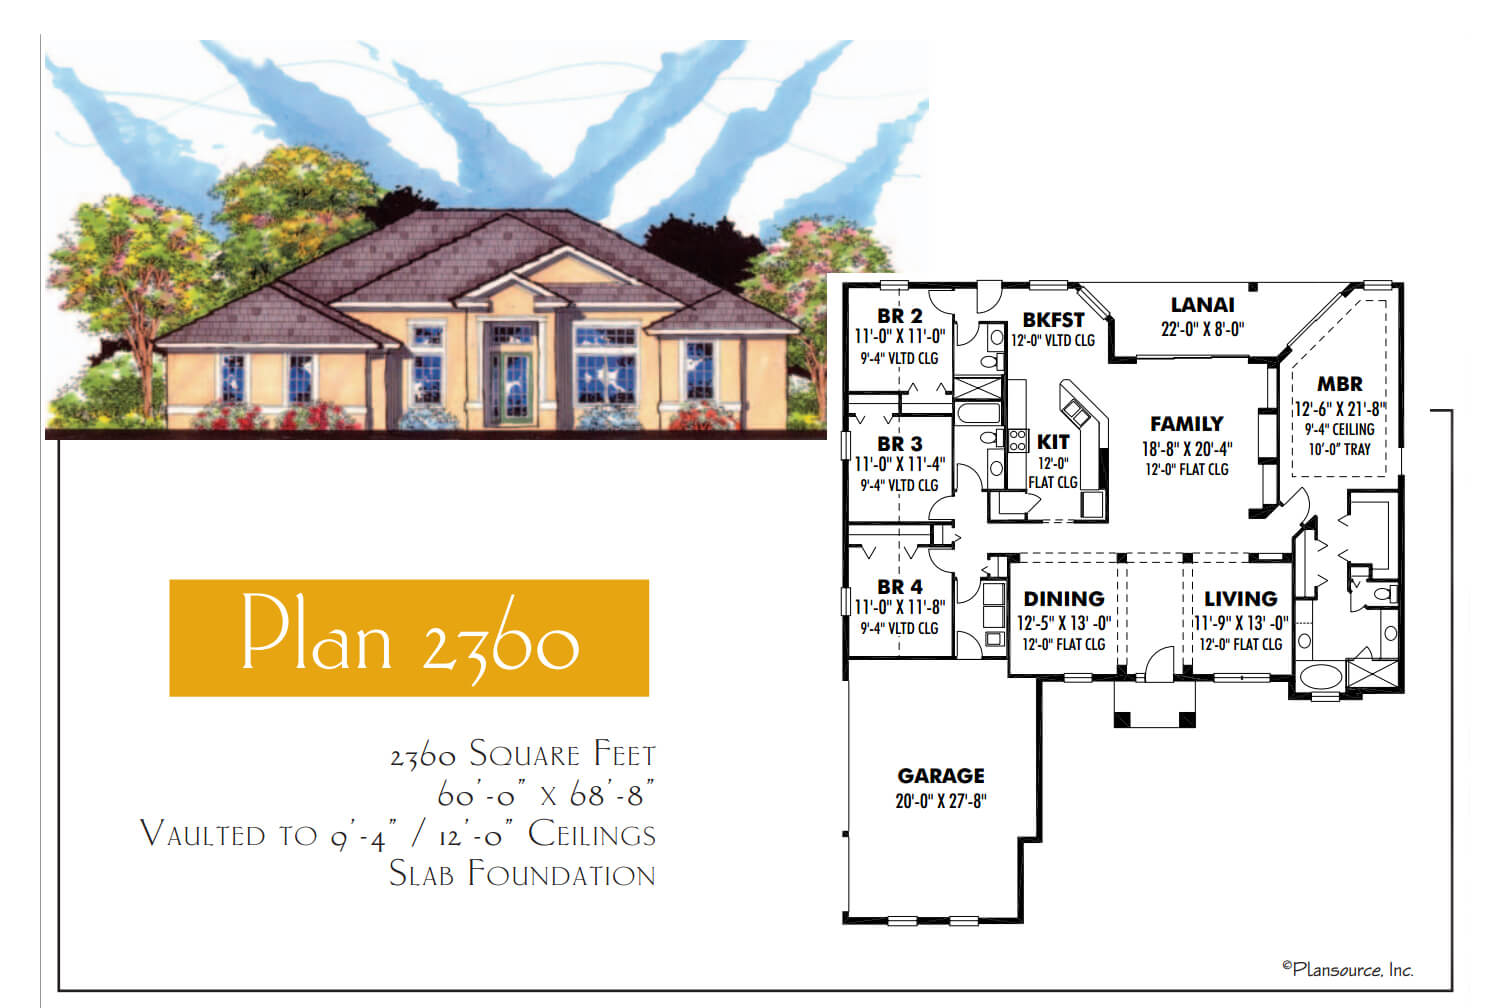 Floor Plans,2,001 SQ FT TO 2,500 SQ FT,1037